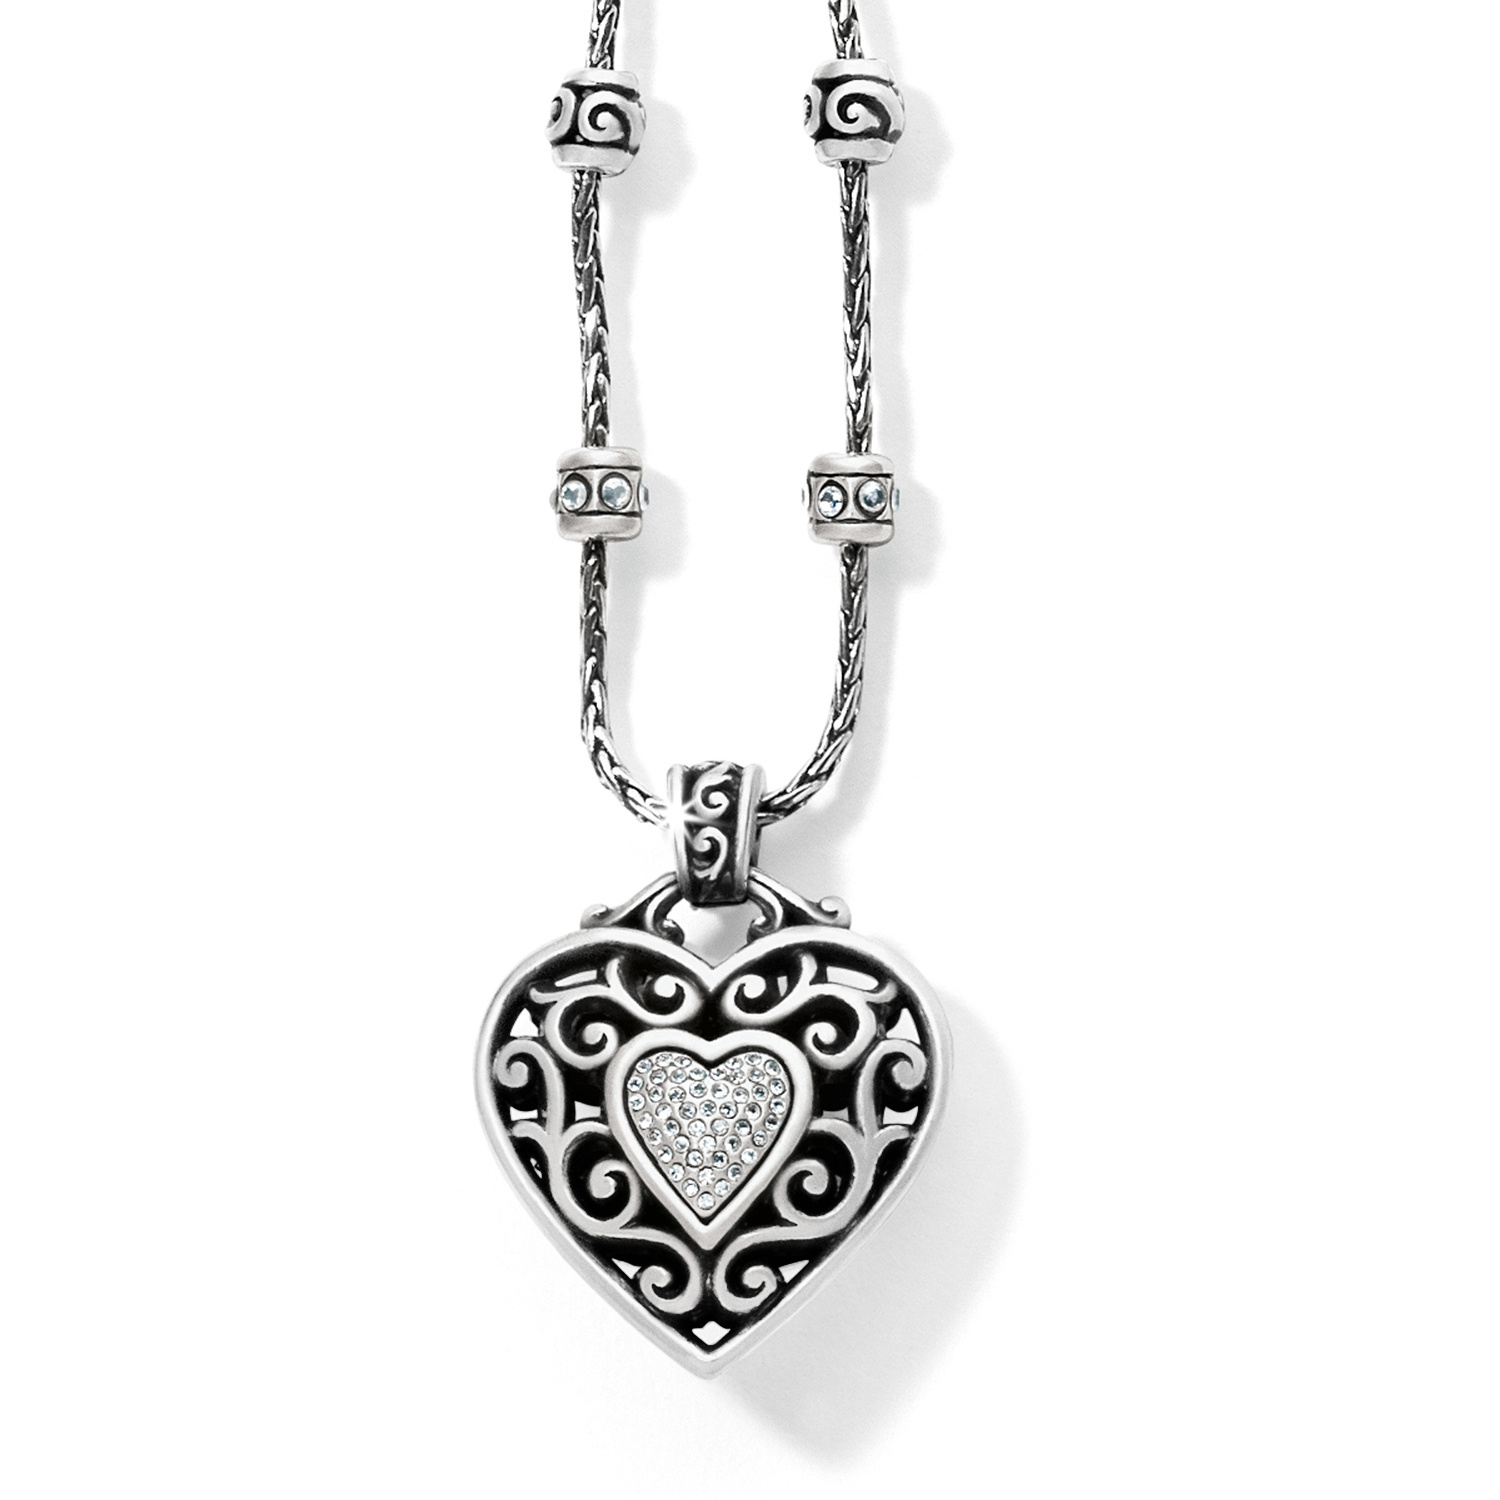 Reno Heart Necklace With Regard To 2020 Heart Fan Pendant Necklaces (View 19 of 25)